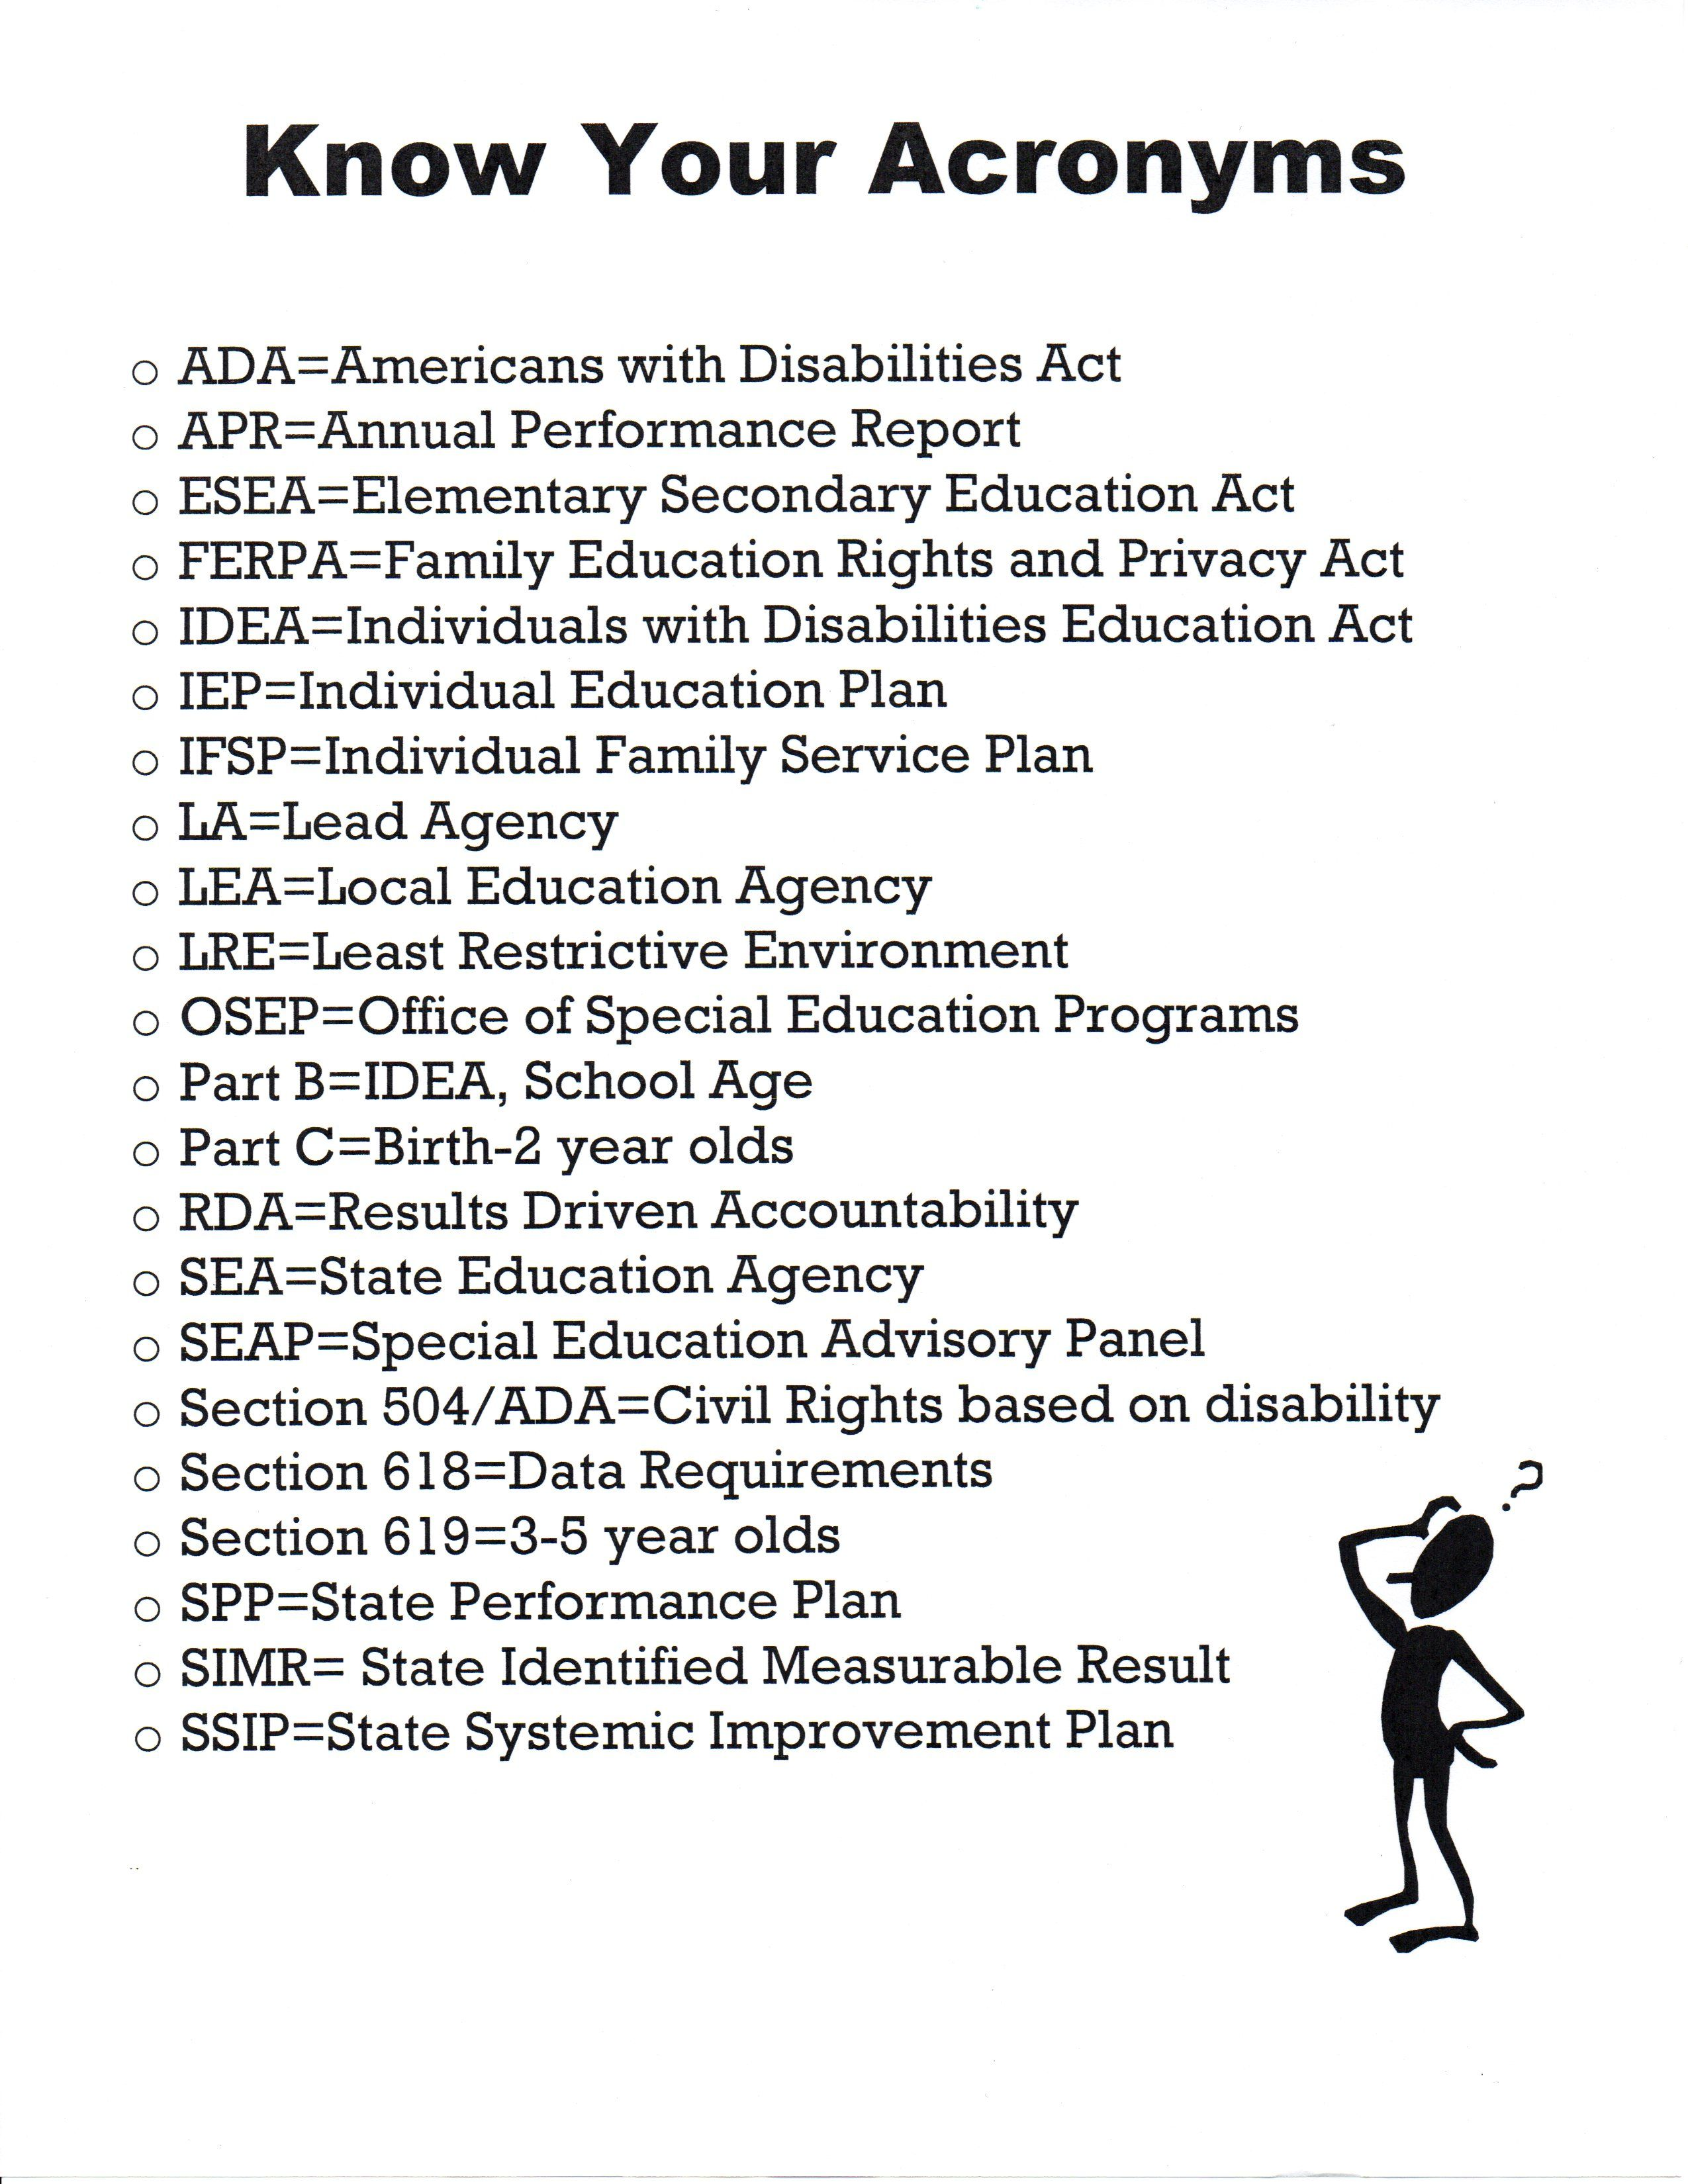 Know Your Disability Law Special Education Acronyms